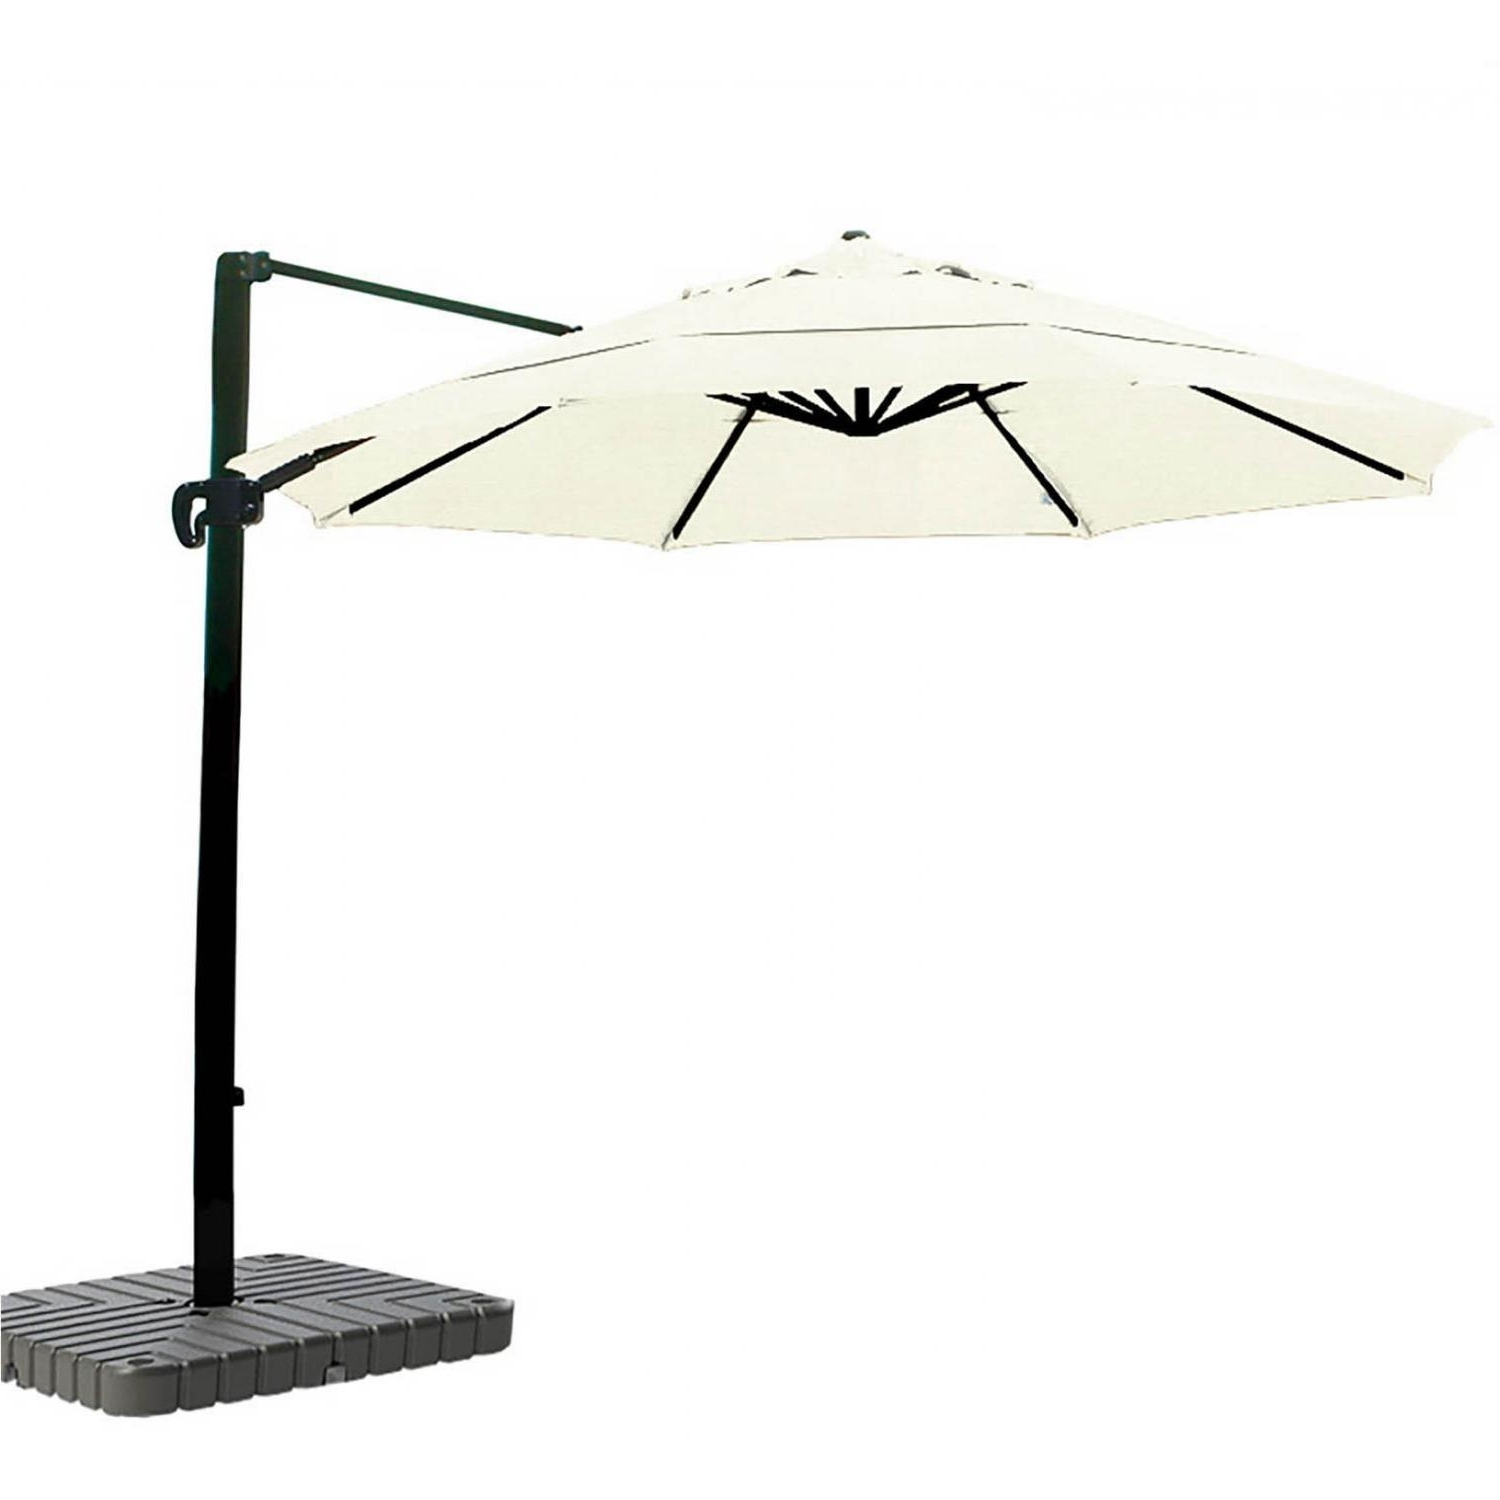 Recent California Umbrella 11 Ft Octagonal Aluminum Multi Position Tilt Intended For 11 Ft (View 14 of 20)